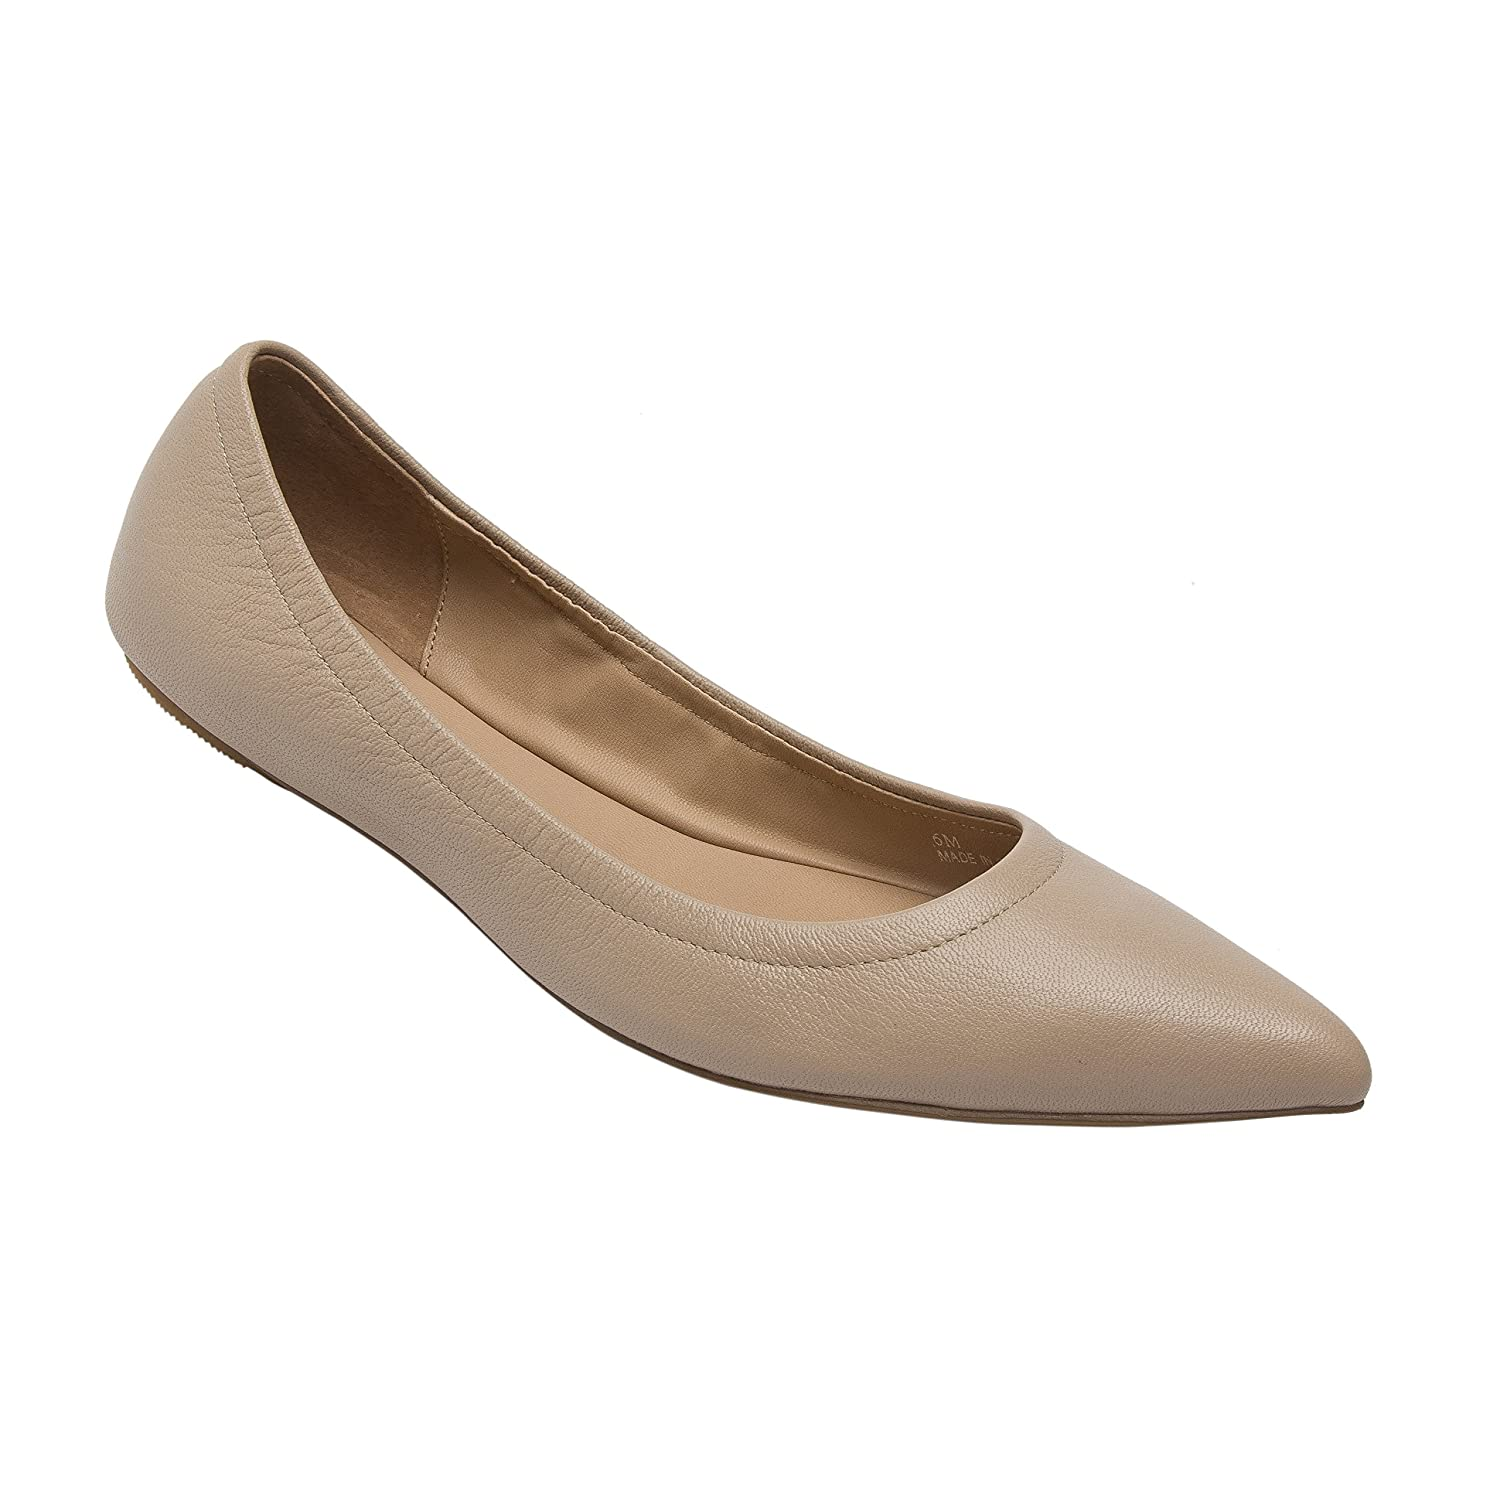 NICO | Women's Pointy Toe Elasticized Leather or Suede Ballet Flat (New Spring) B0778X1FTS 12 M US|Blush Light Pebbled Leather